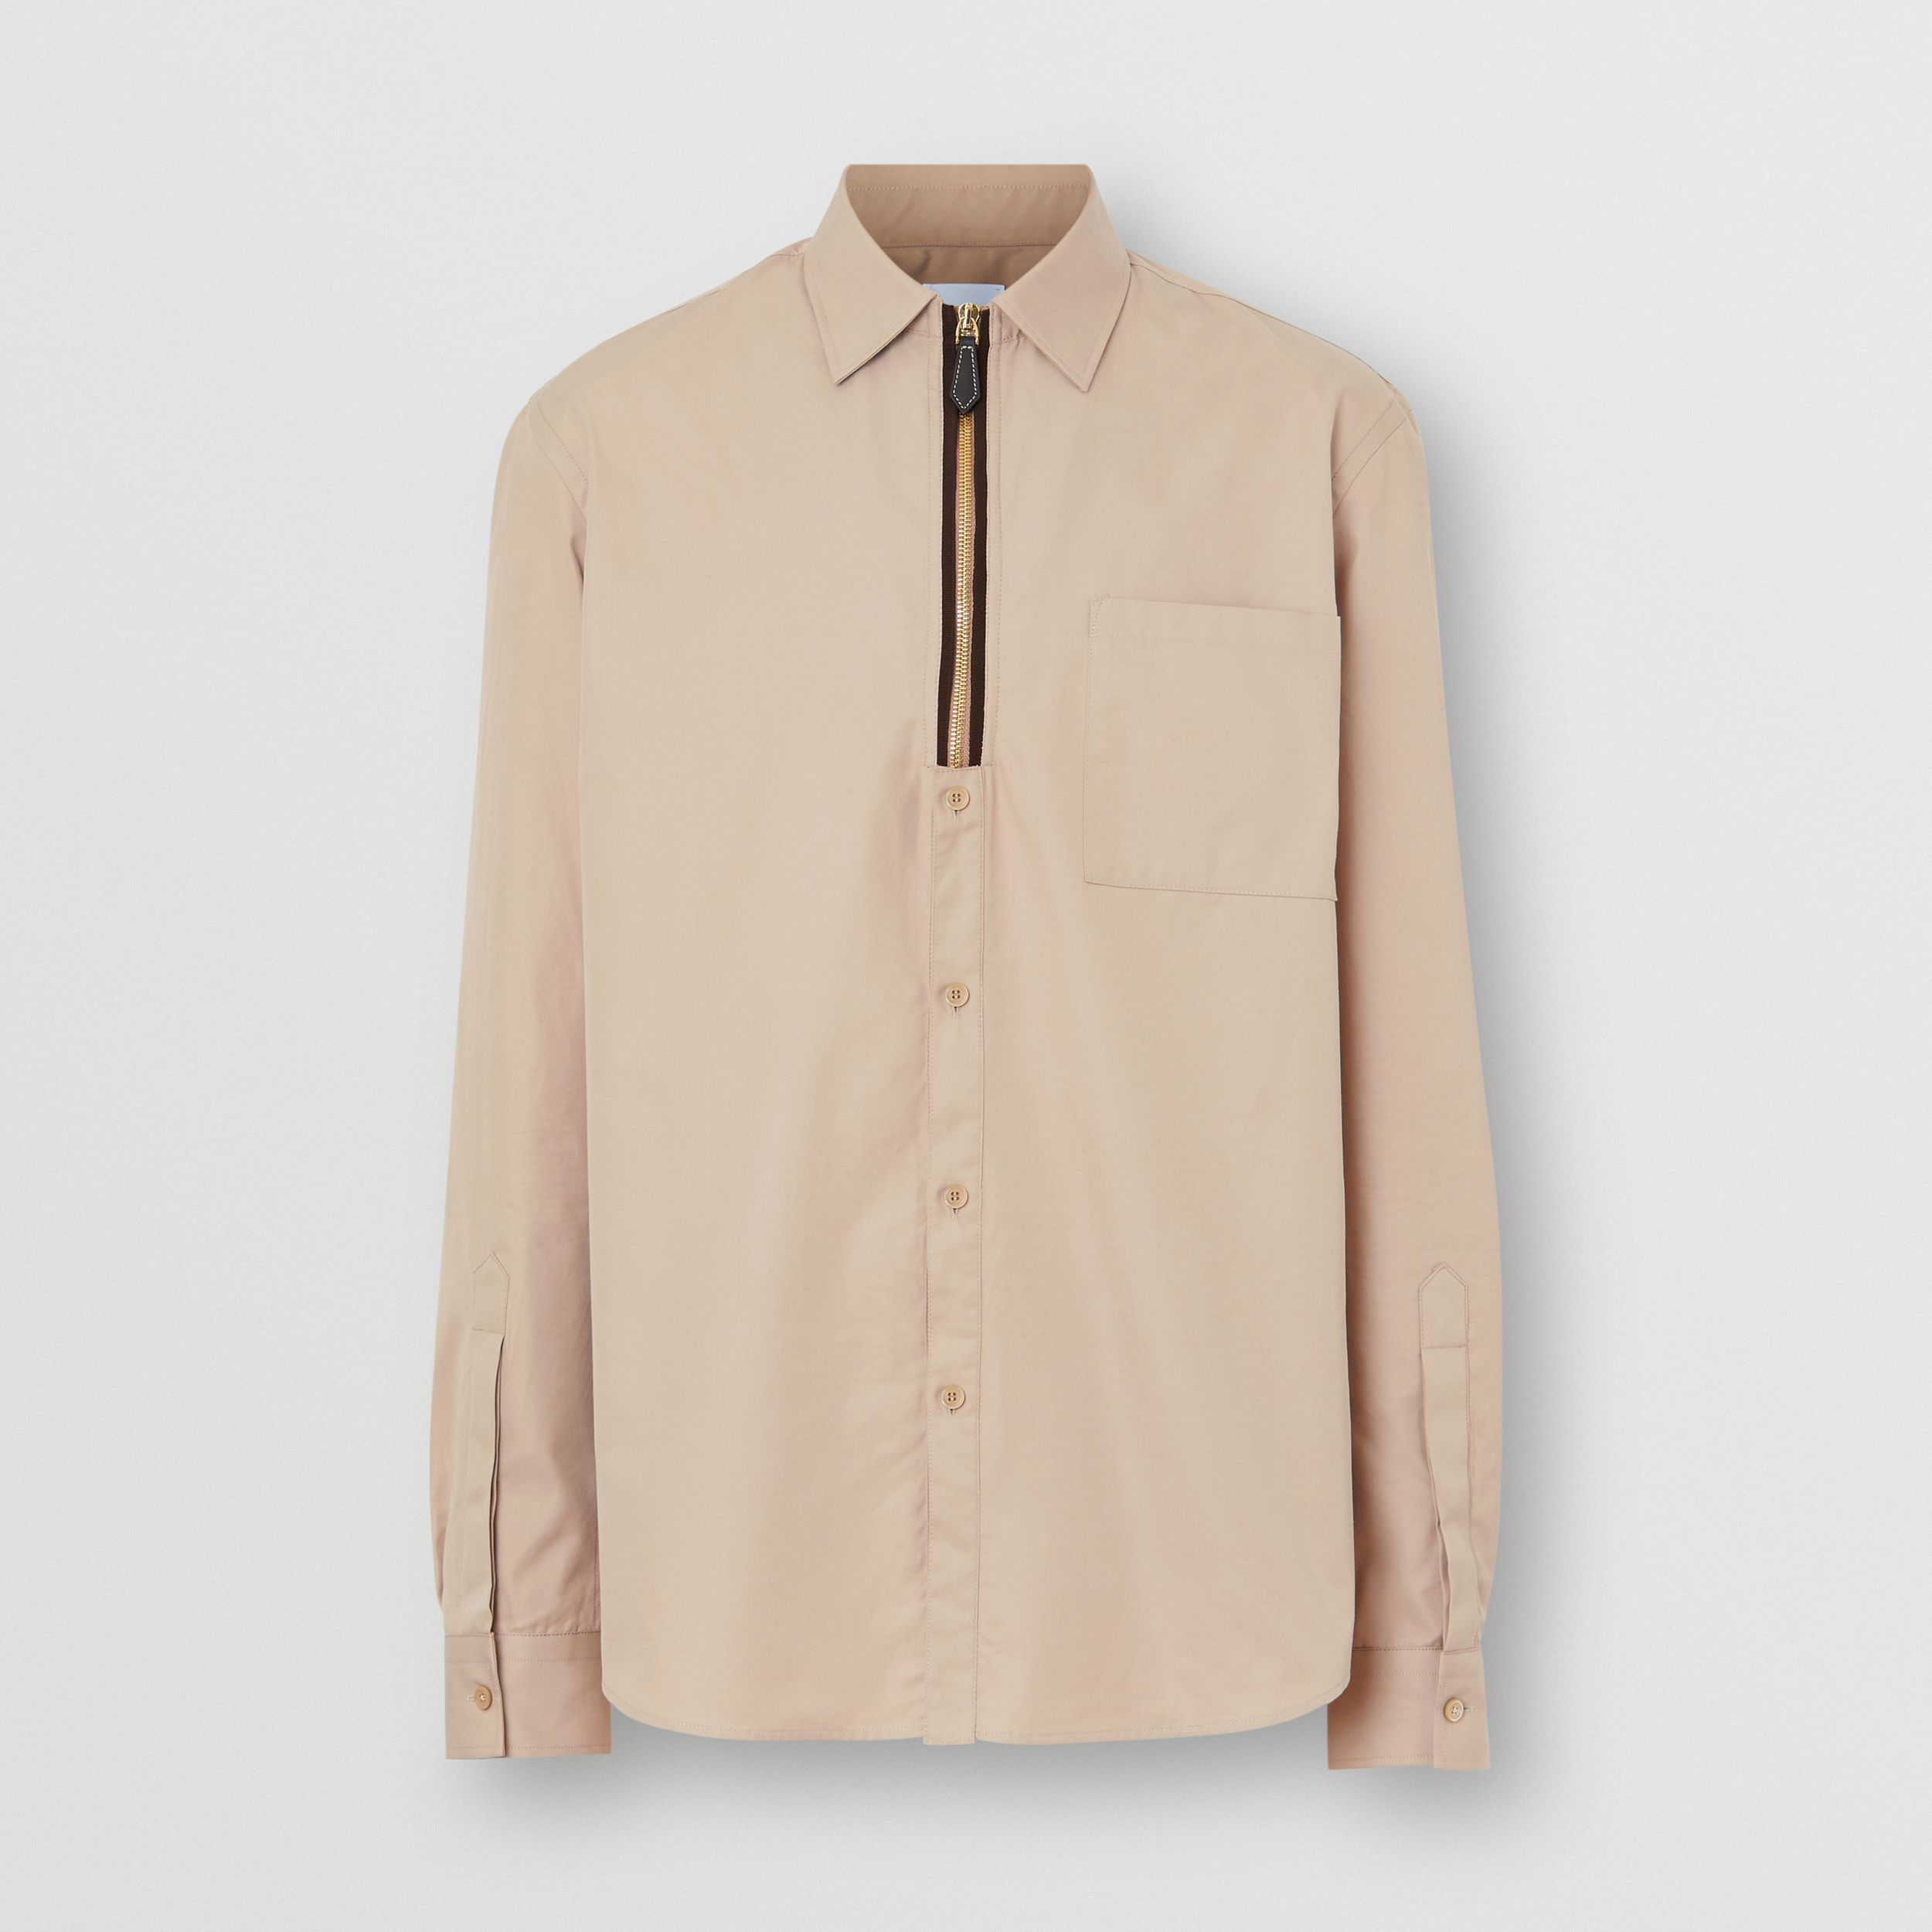 Classic Fit Zip Detail Cotton Twill Shirt in Soft Fawn - Men | Burberry United Kingdom - 4